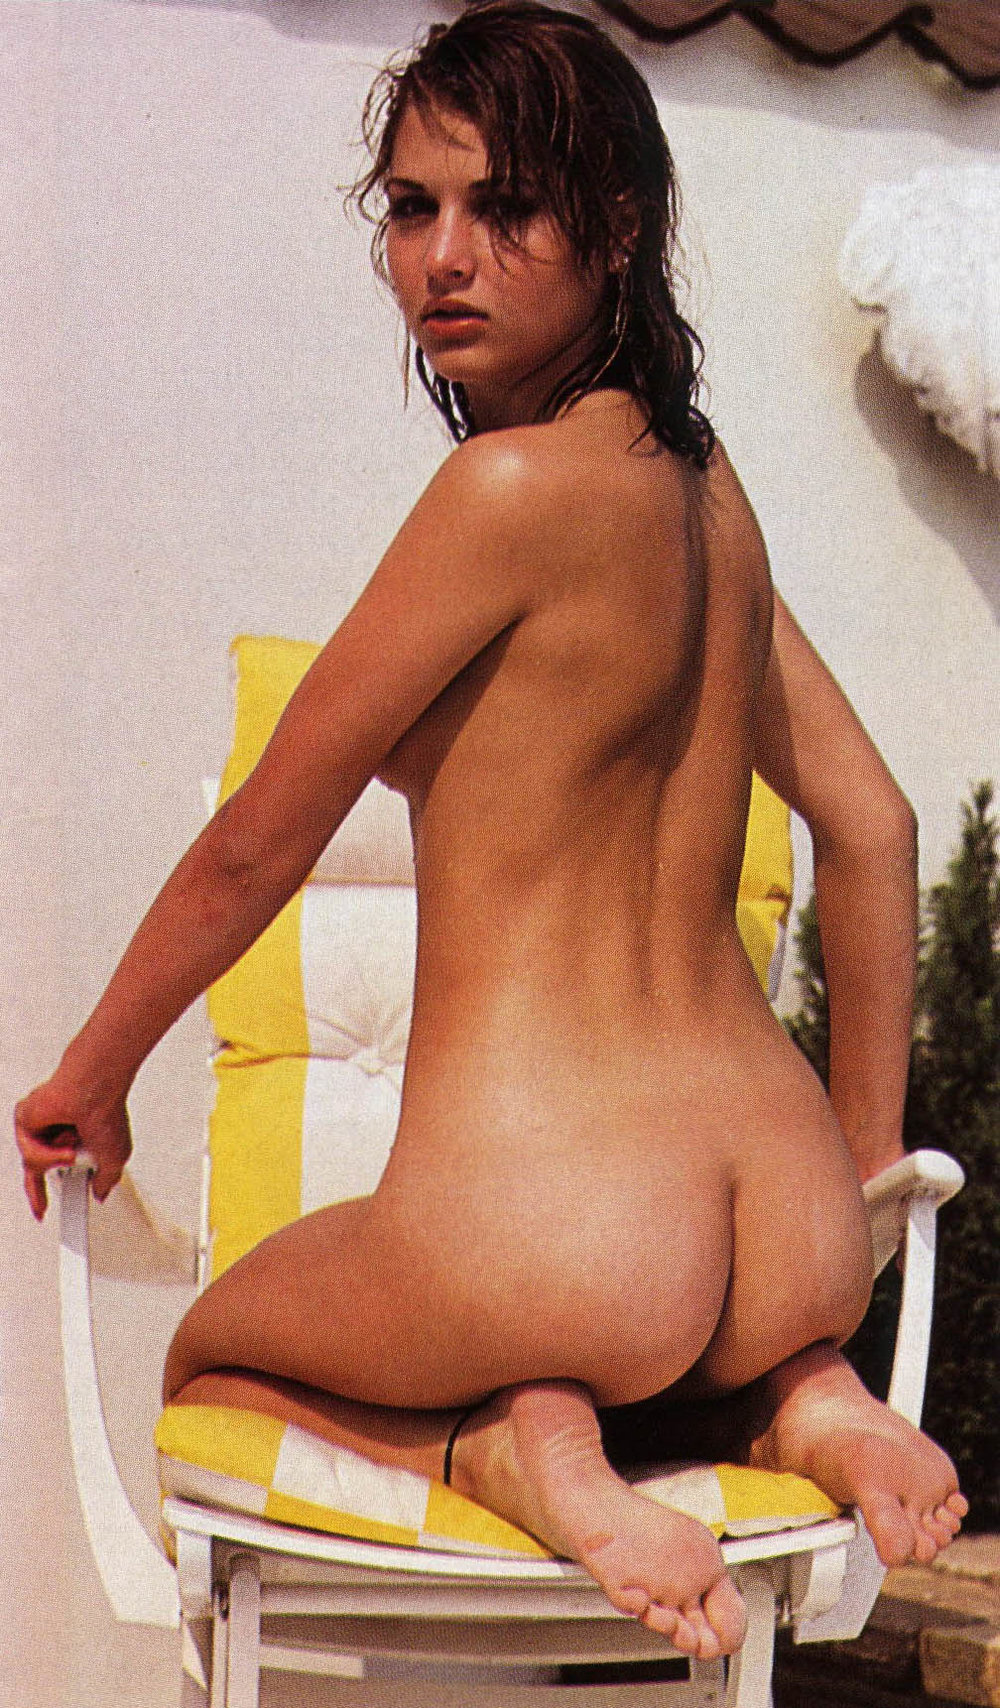 janet-johnson-mayfair-magazine-vol17-no7-1982